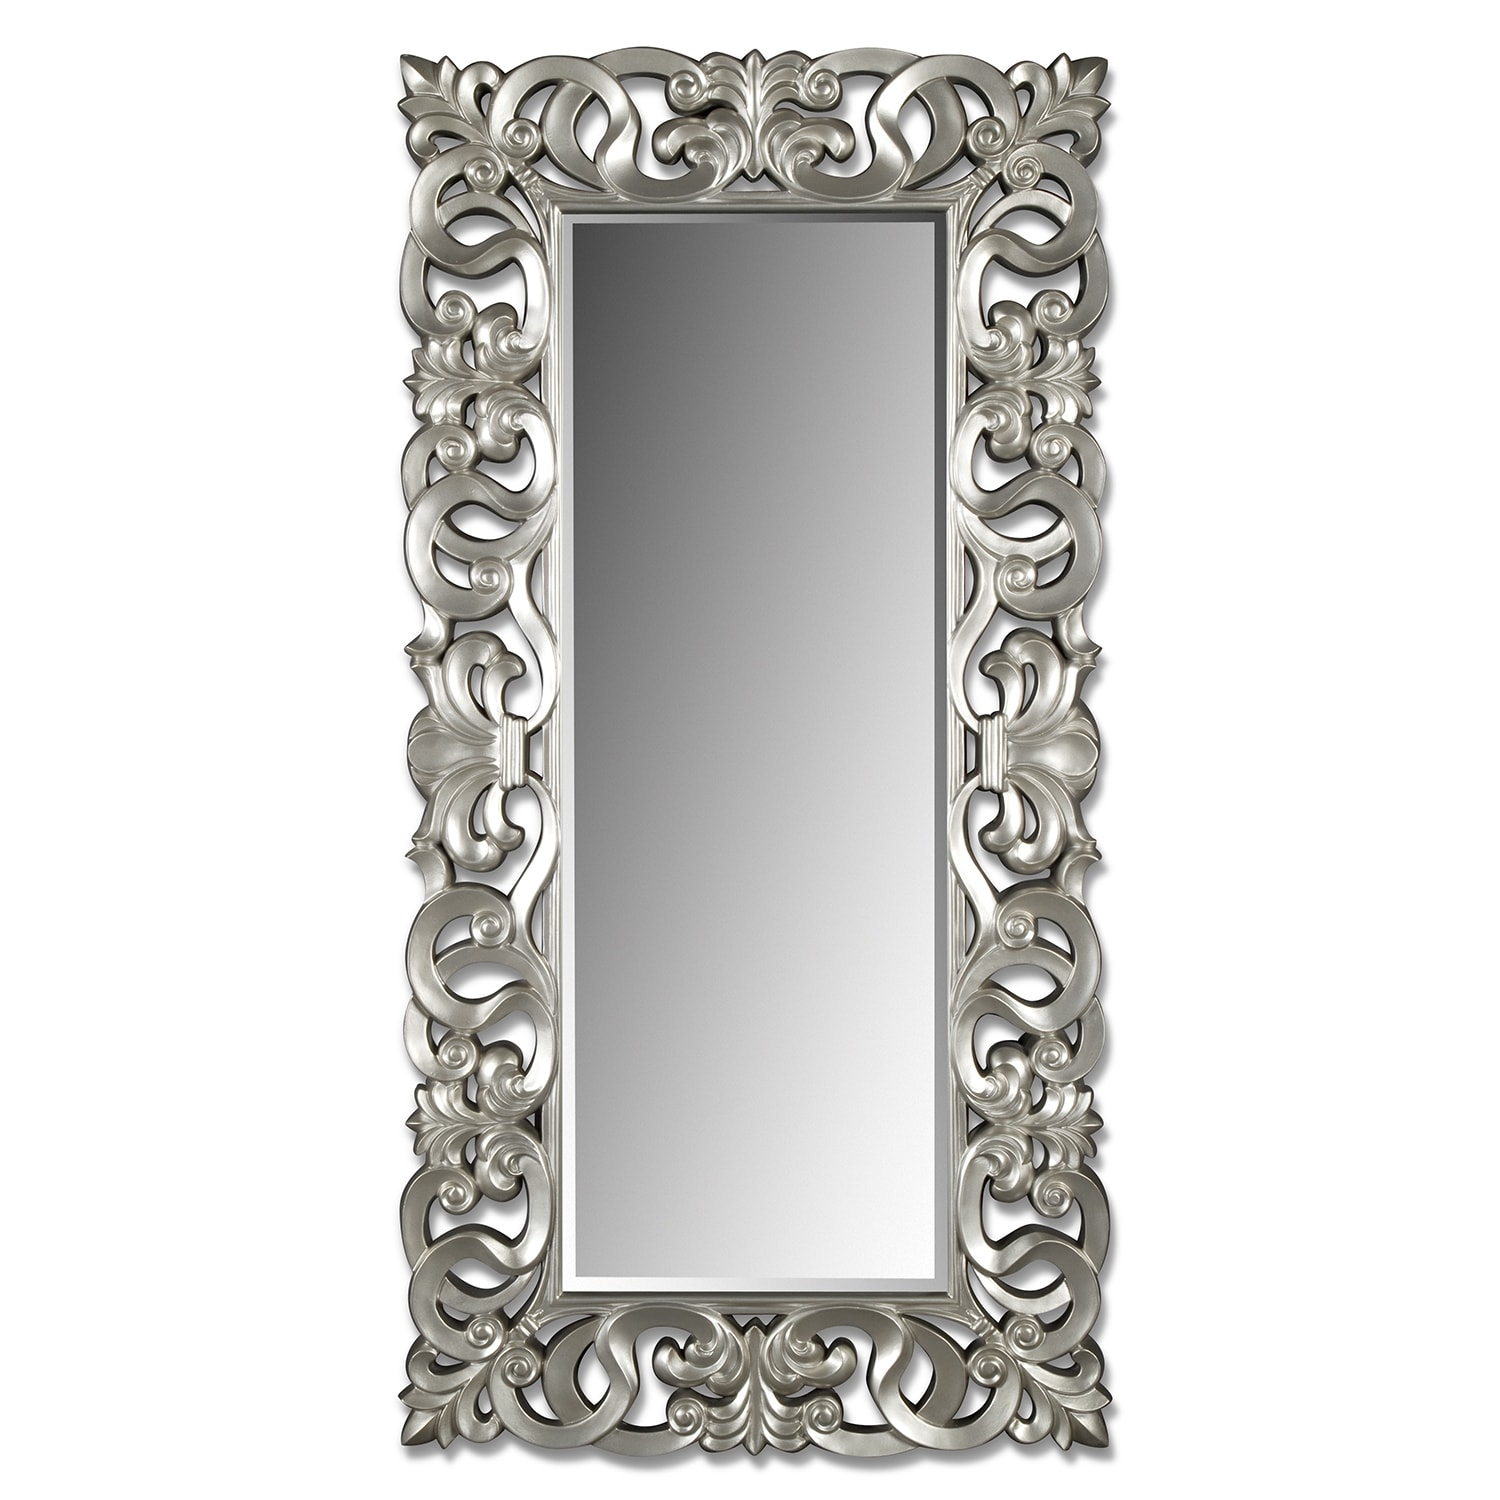 Silver Scroll Mirror Value City Furniture And Mattresses